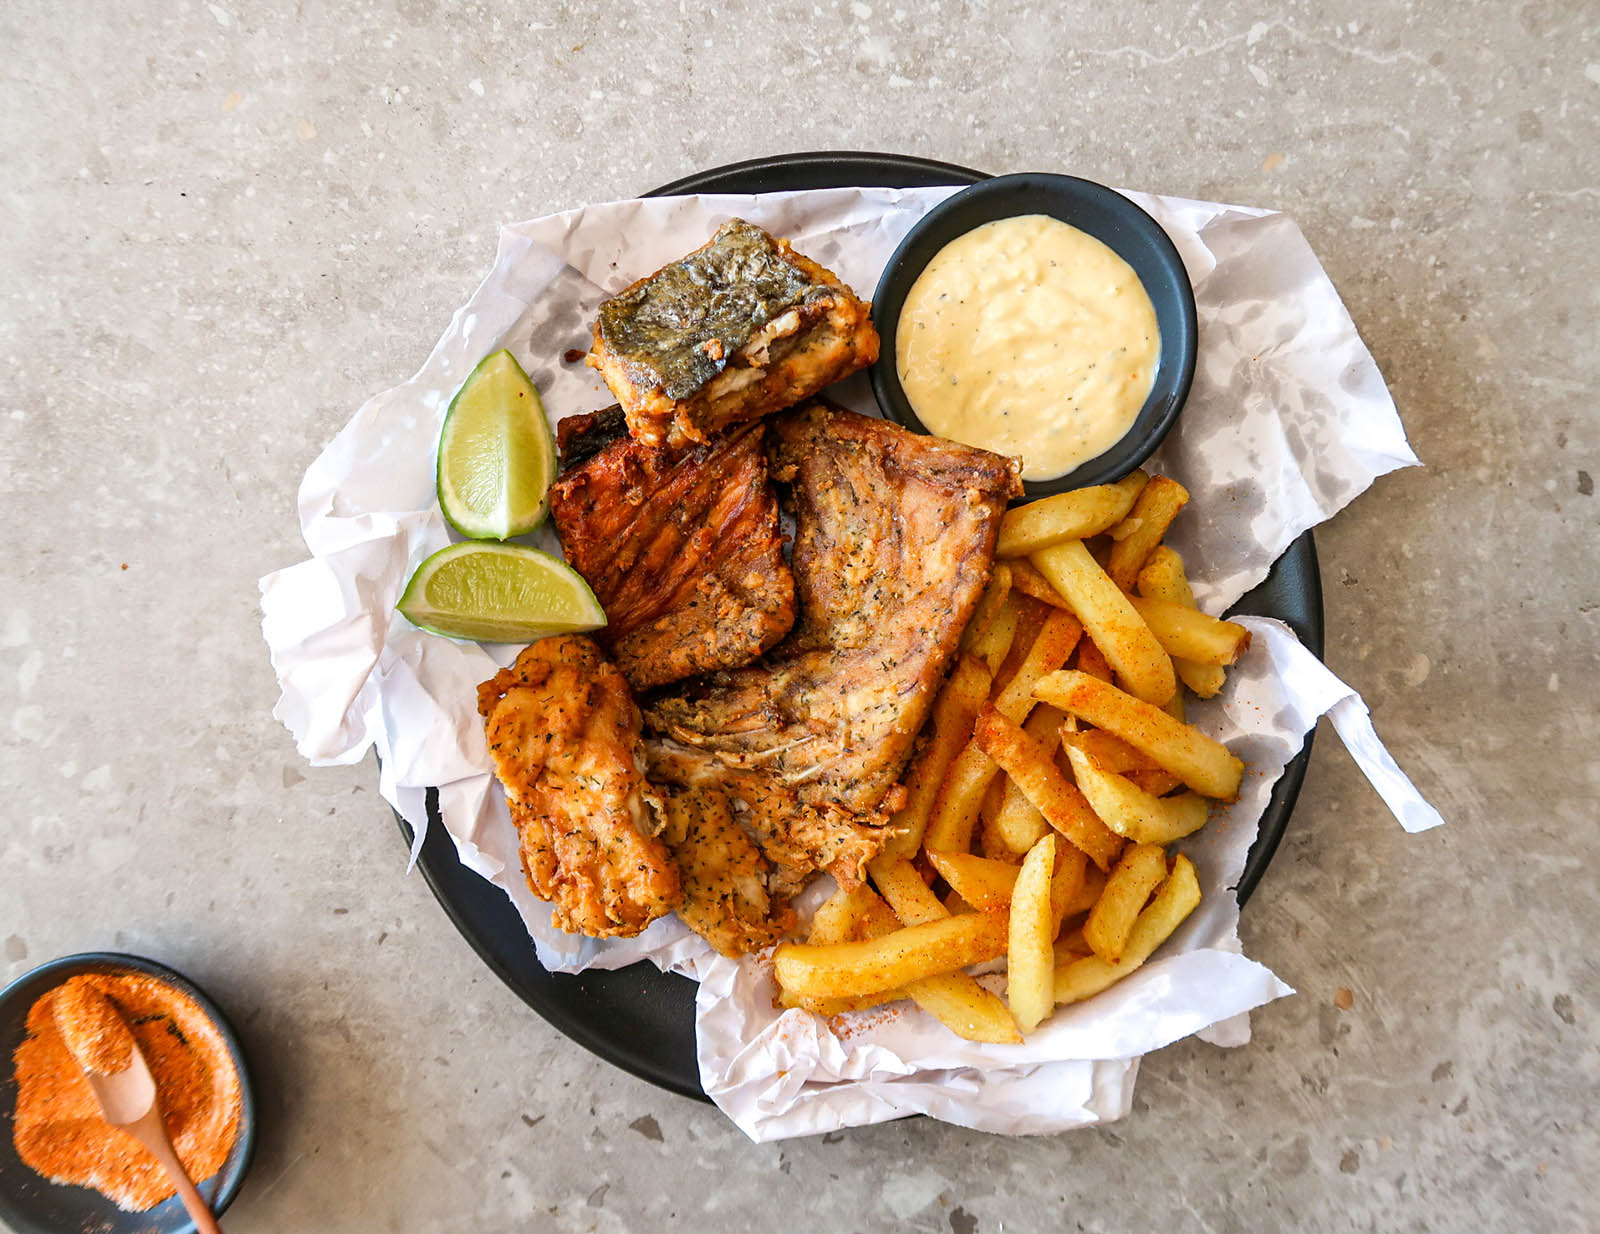 Battered Fried Fish and chips